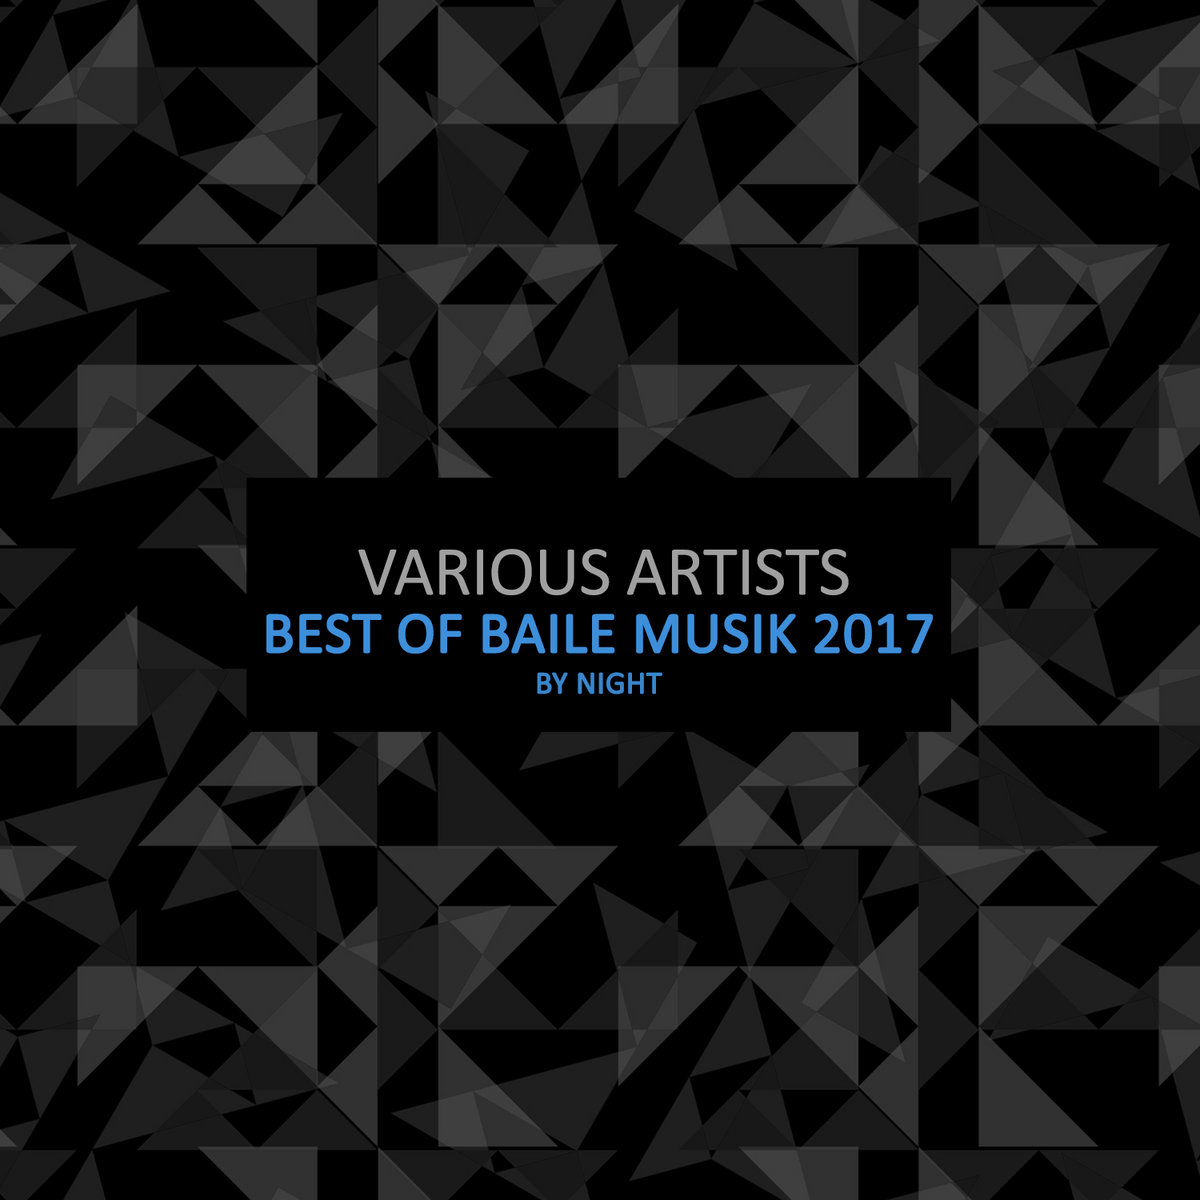 From Best Of Baile Musik 2017